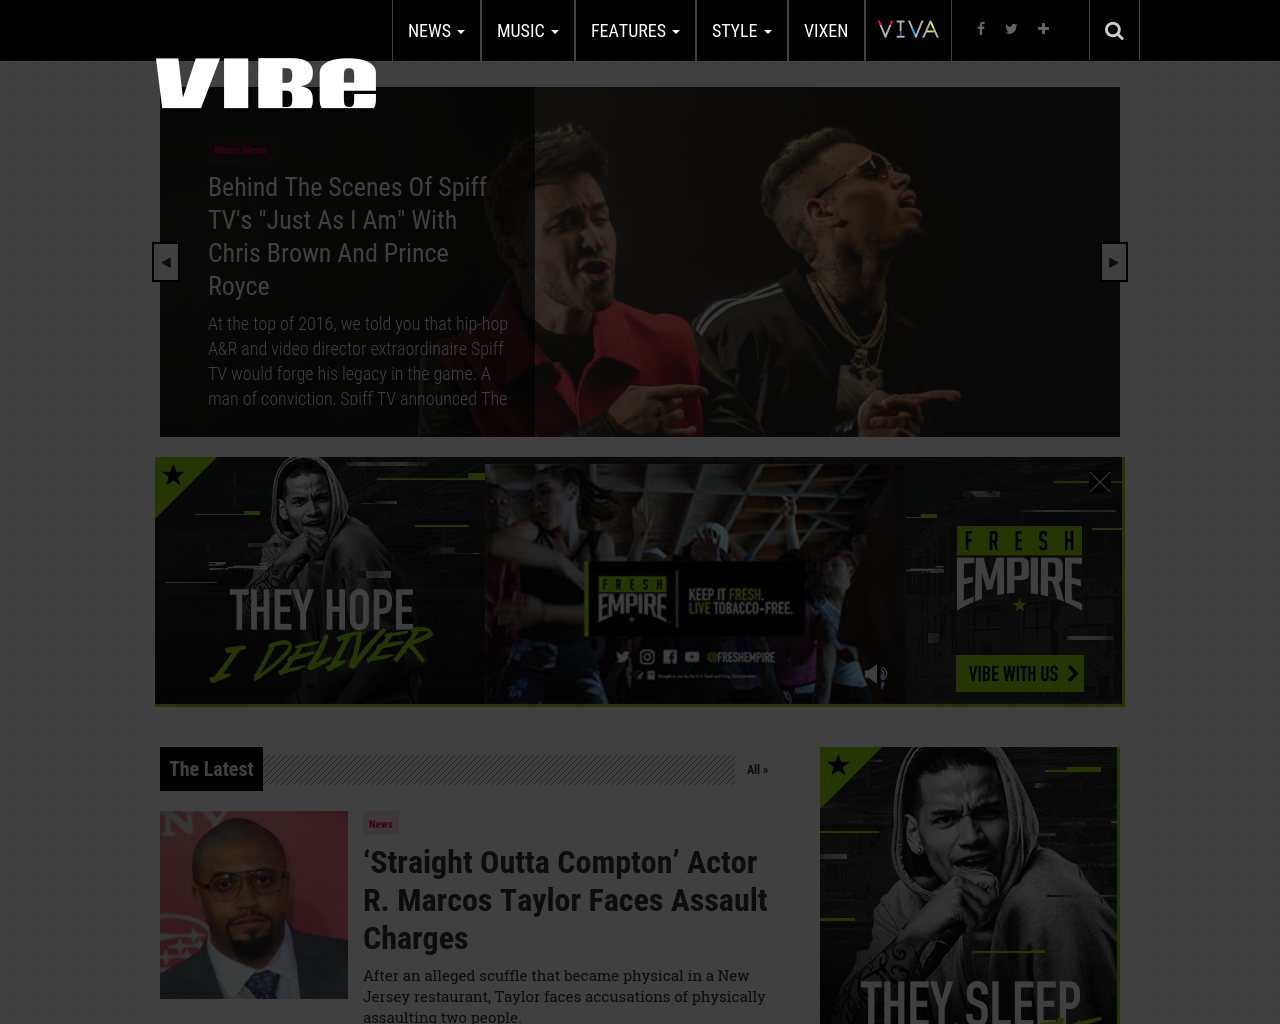 Vibe-/-Acces-Network-Advertising-Reviews-Pricing